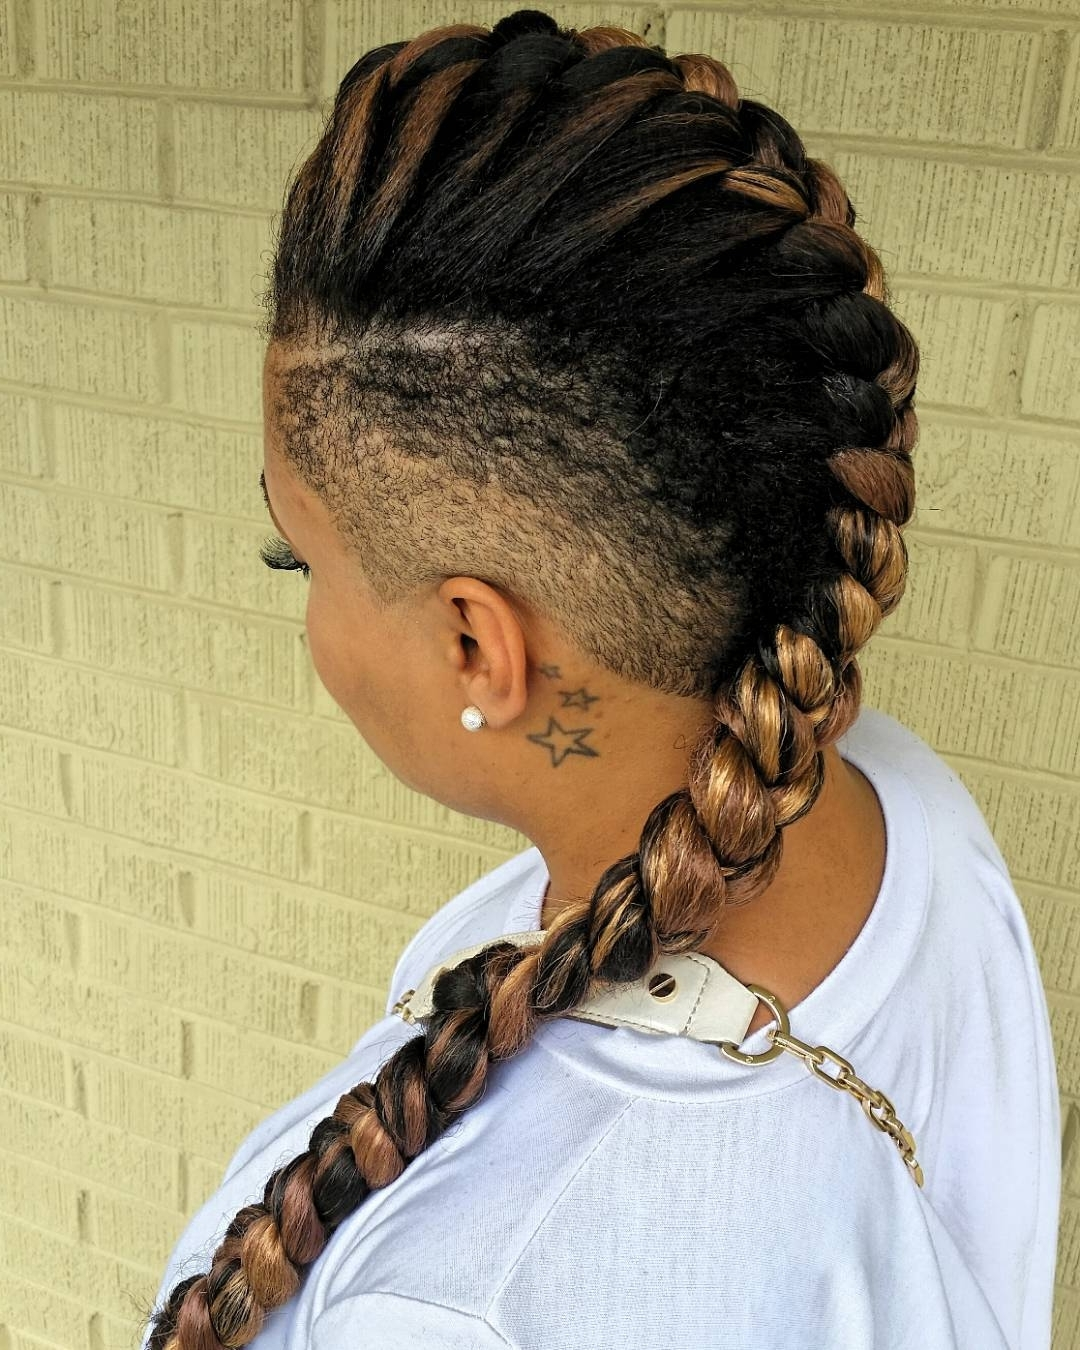 Current Braided Hawk Hairstyles For Mohawk Braids: 12 Braided Mohawk Hairstyles That Get Attention (View 9 of 20)